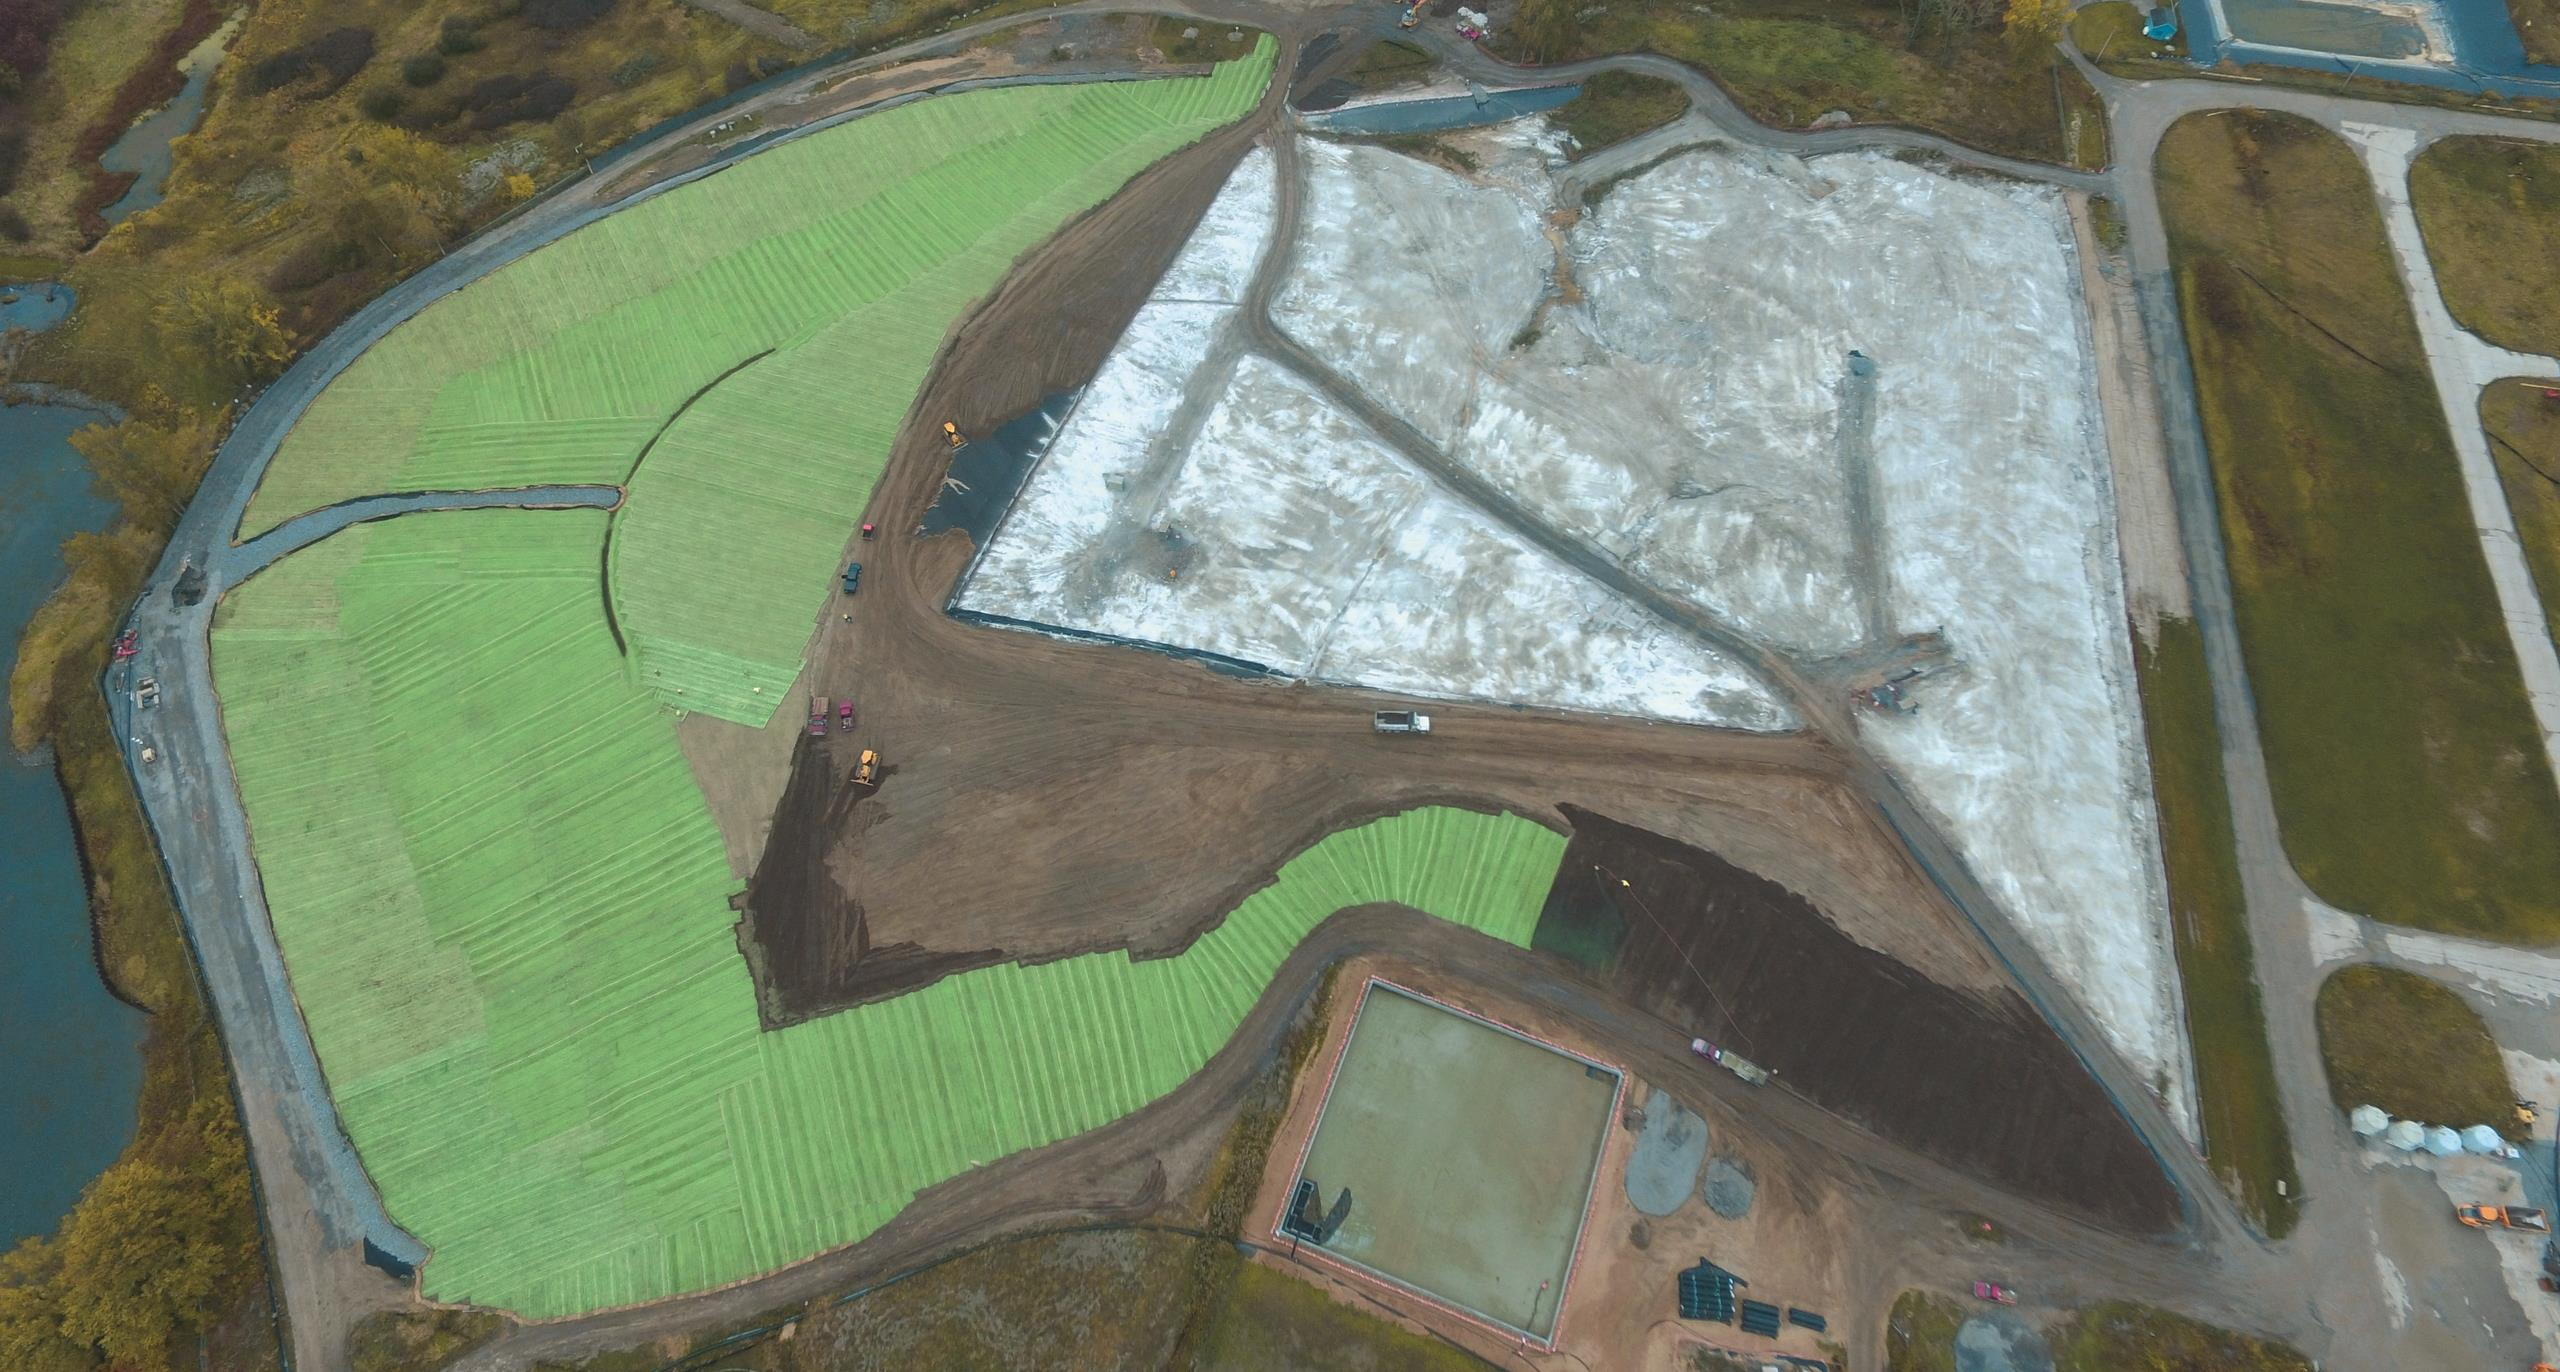 Aerial view of the General Motors (GM) Powertrain Plant site